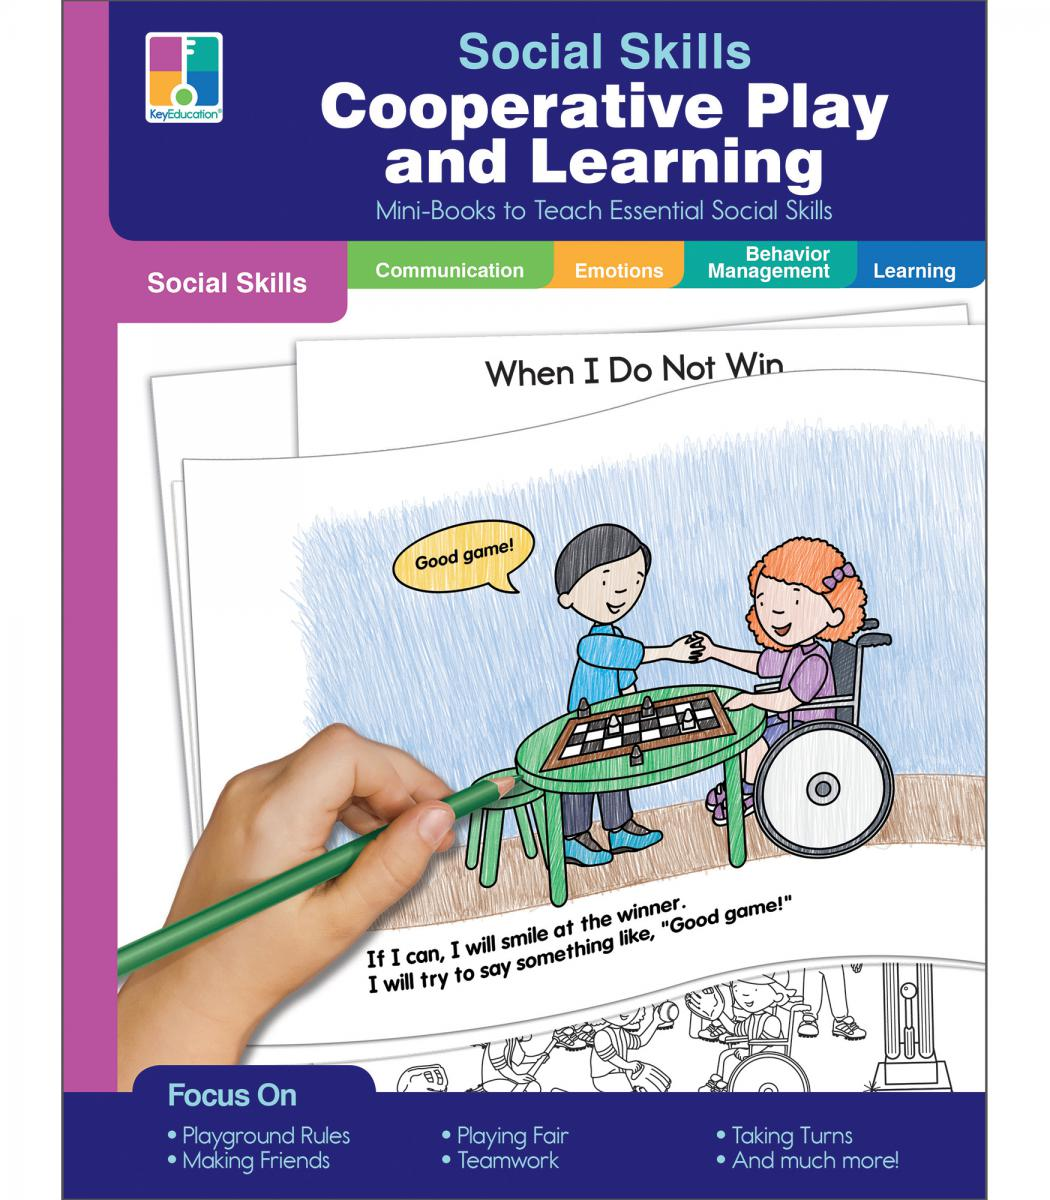 Social Skills: Cooperative Play and Learning